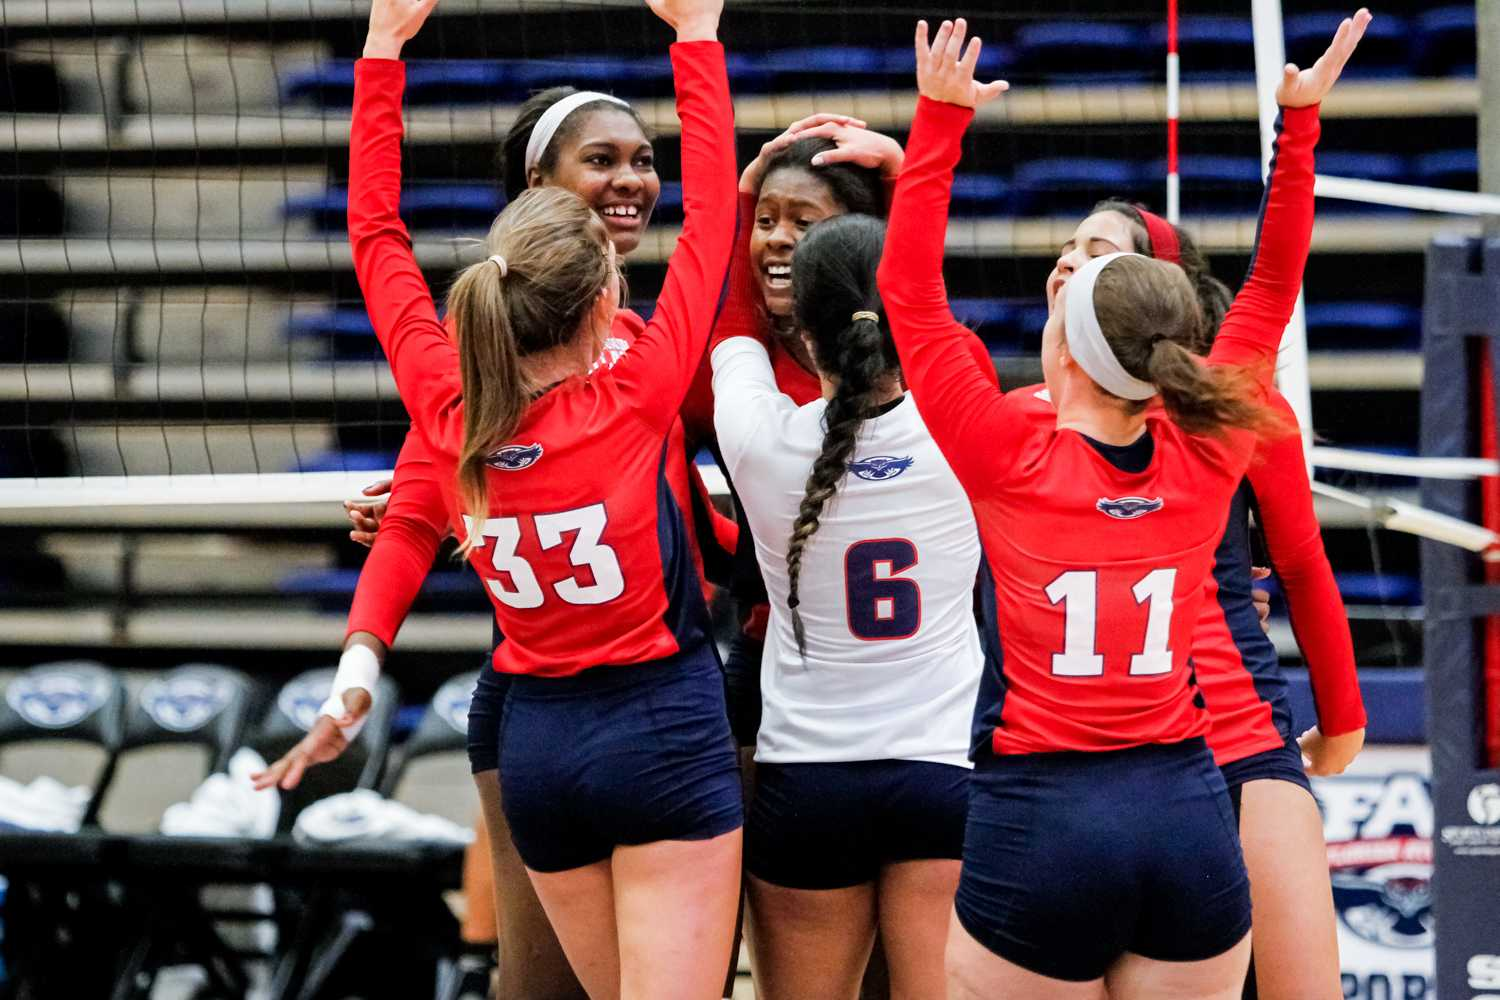 The Owls celebrate after earning the final point to sweep the Stetson Hatters in the second game of the FAU Invitational tournament. Mohammed F Emran | Staff Photographer